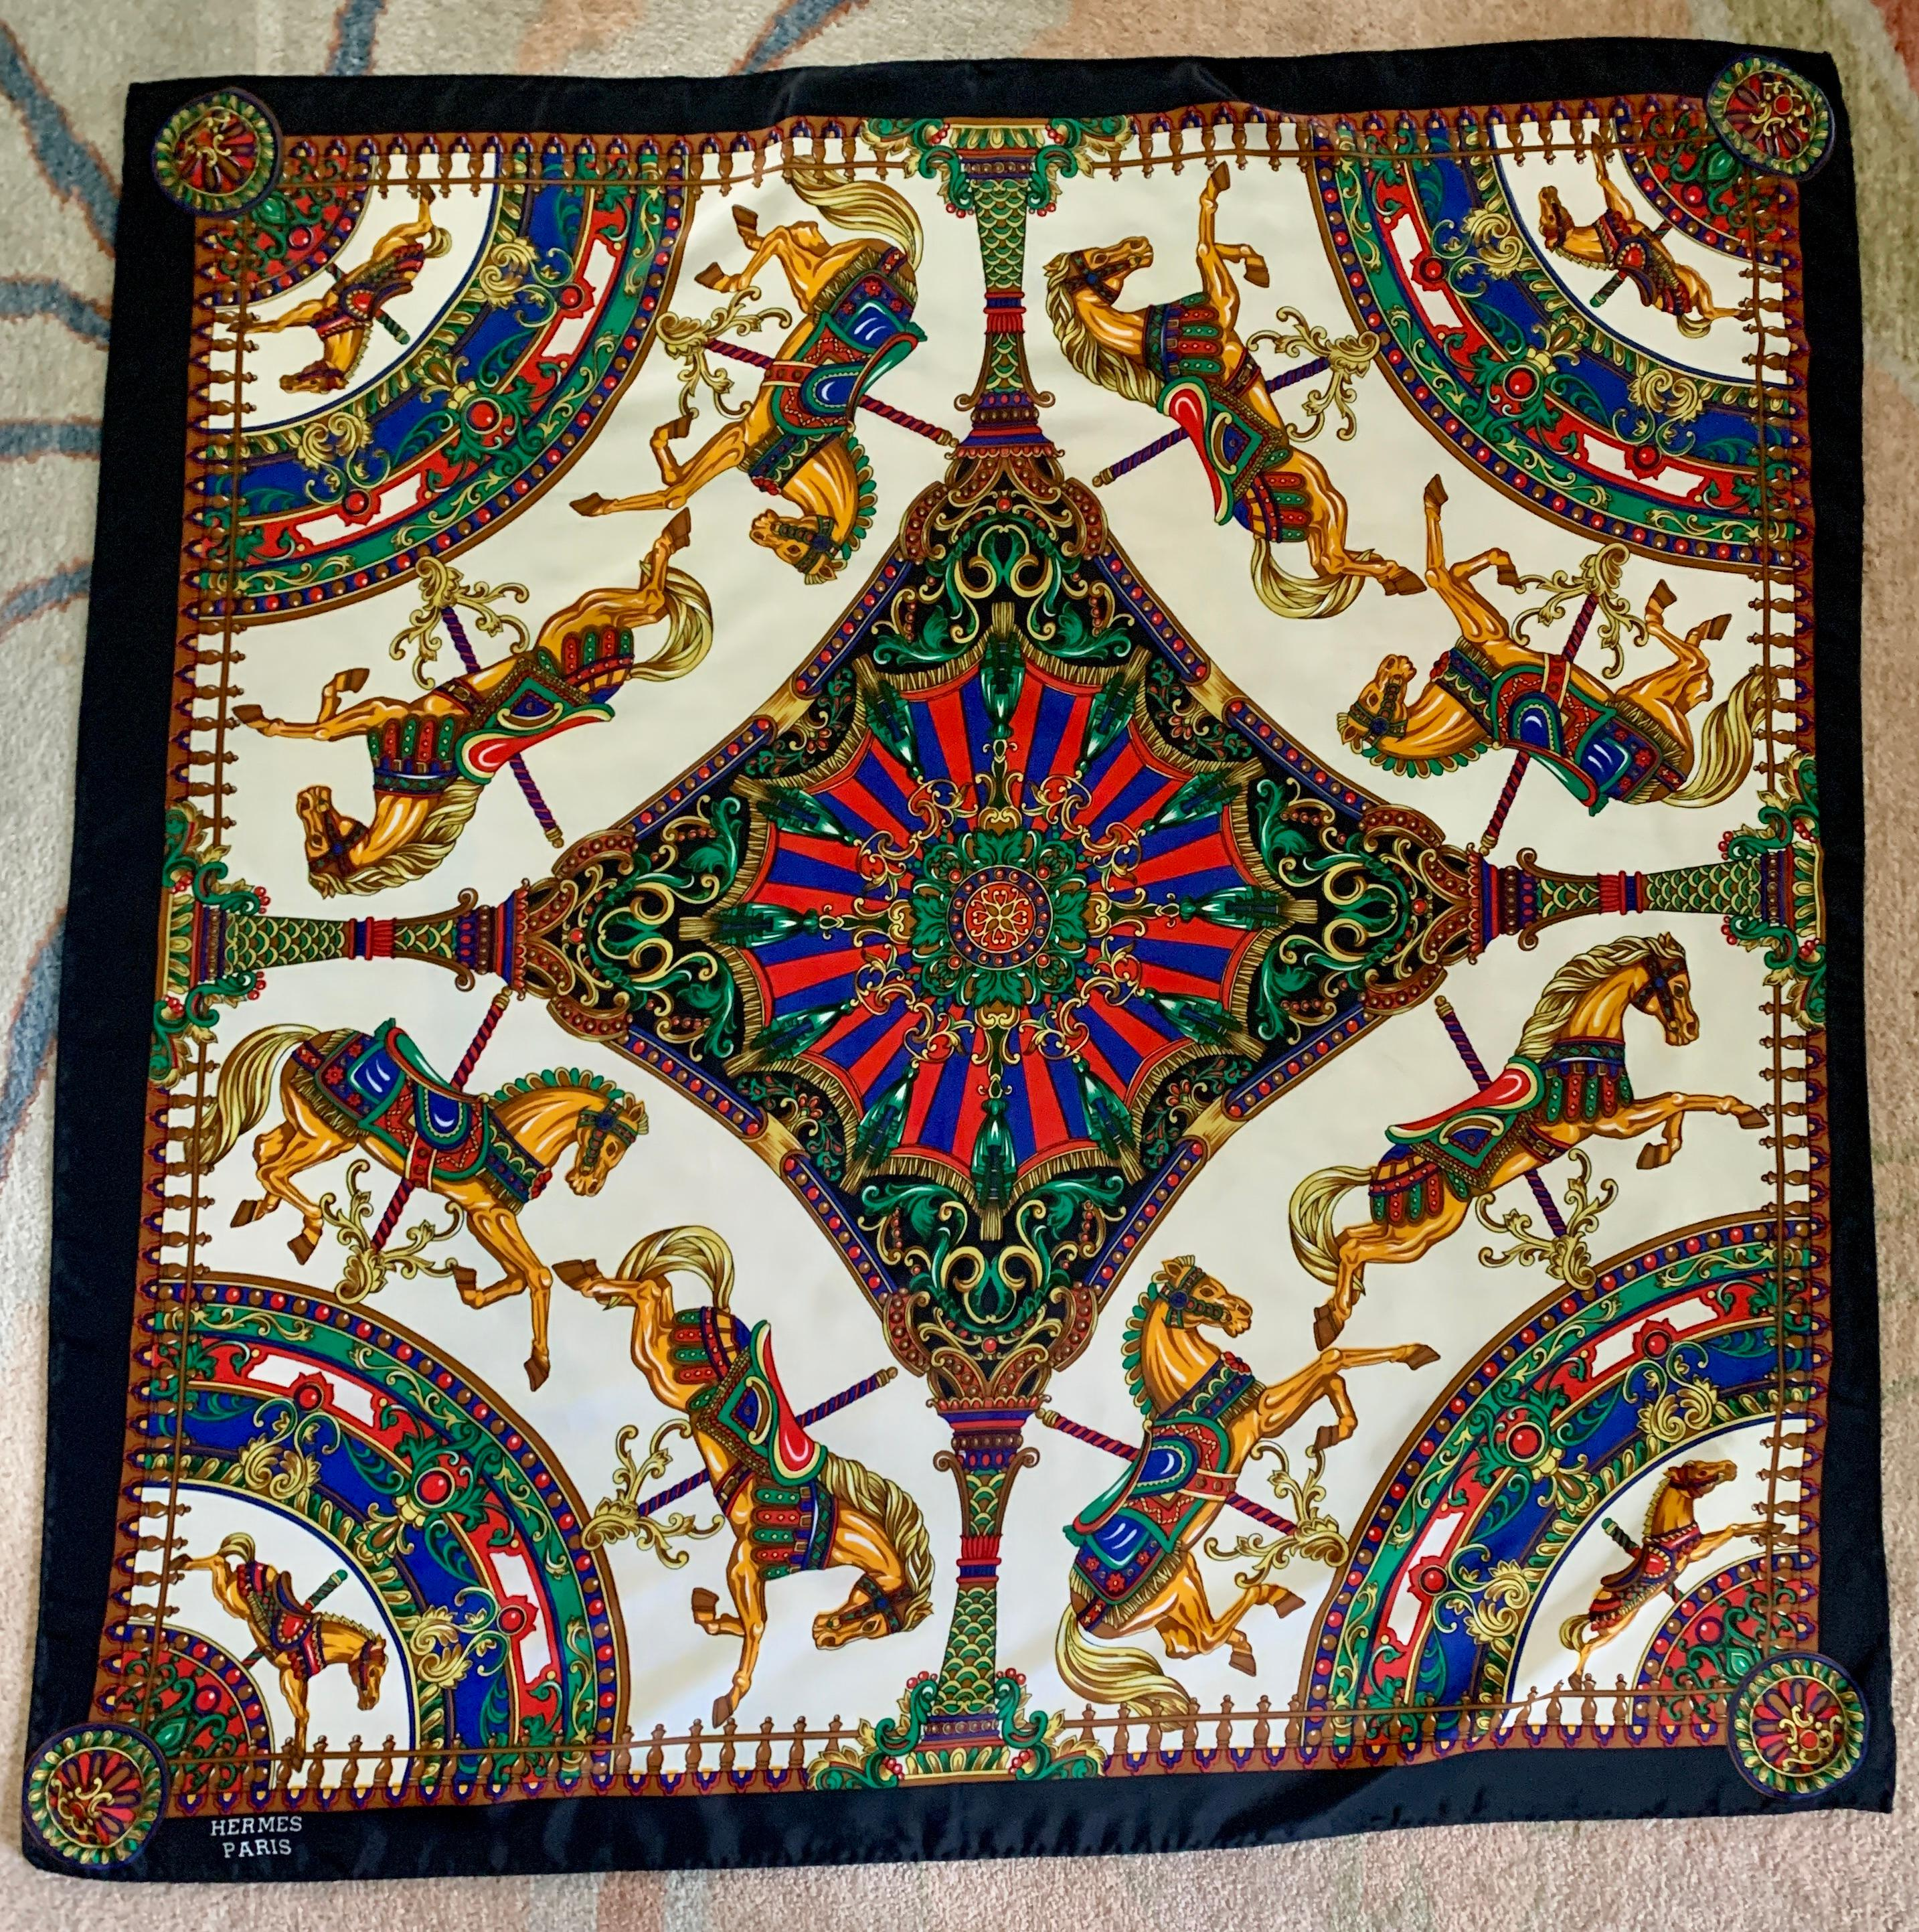 Hermes Paris Silk Scarf With Carousel Horse Pattern For Sale At 1stdibs